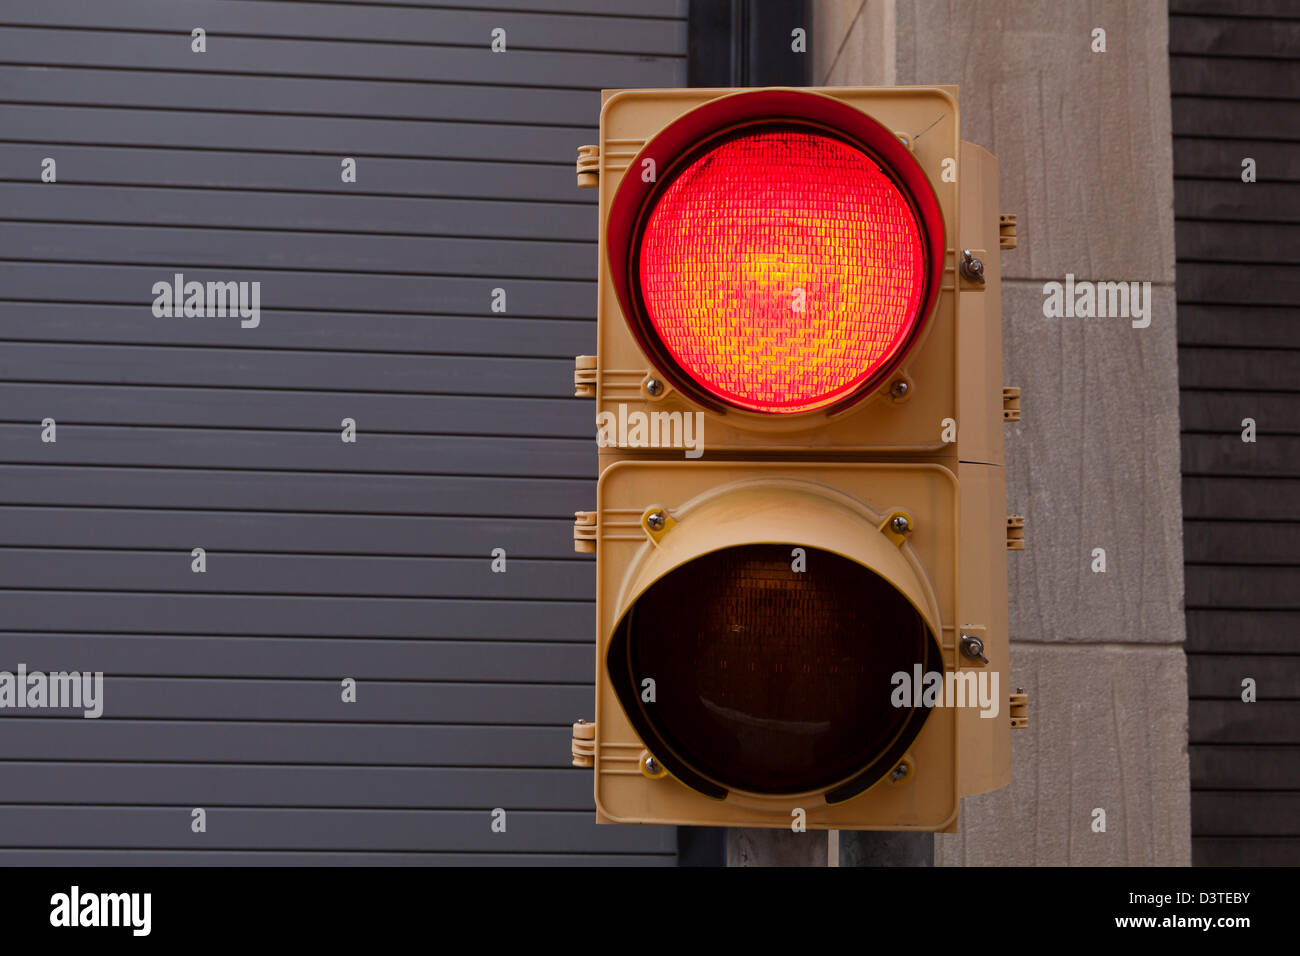 Red signal light - Stock Image